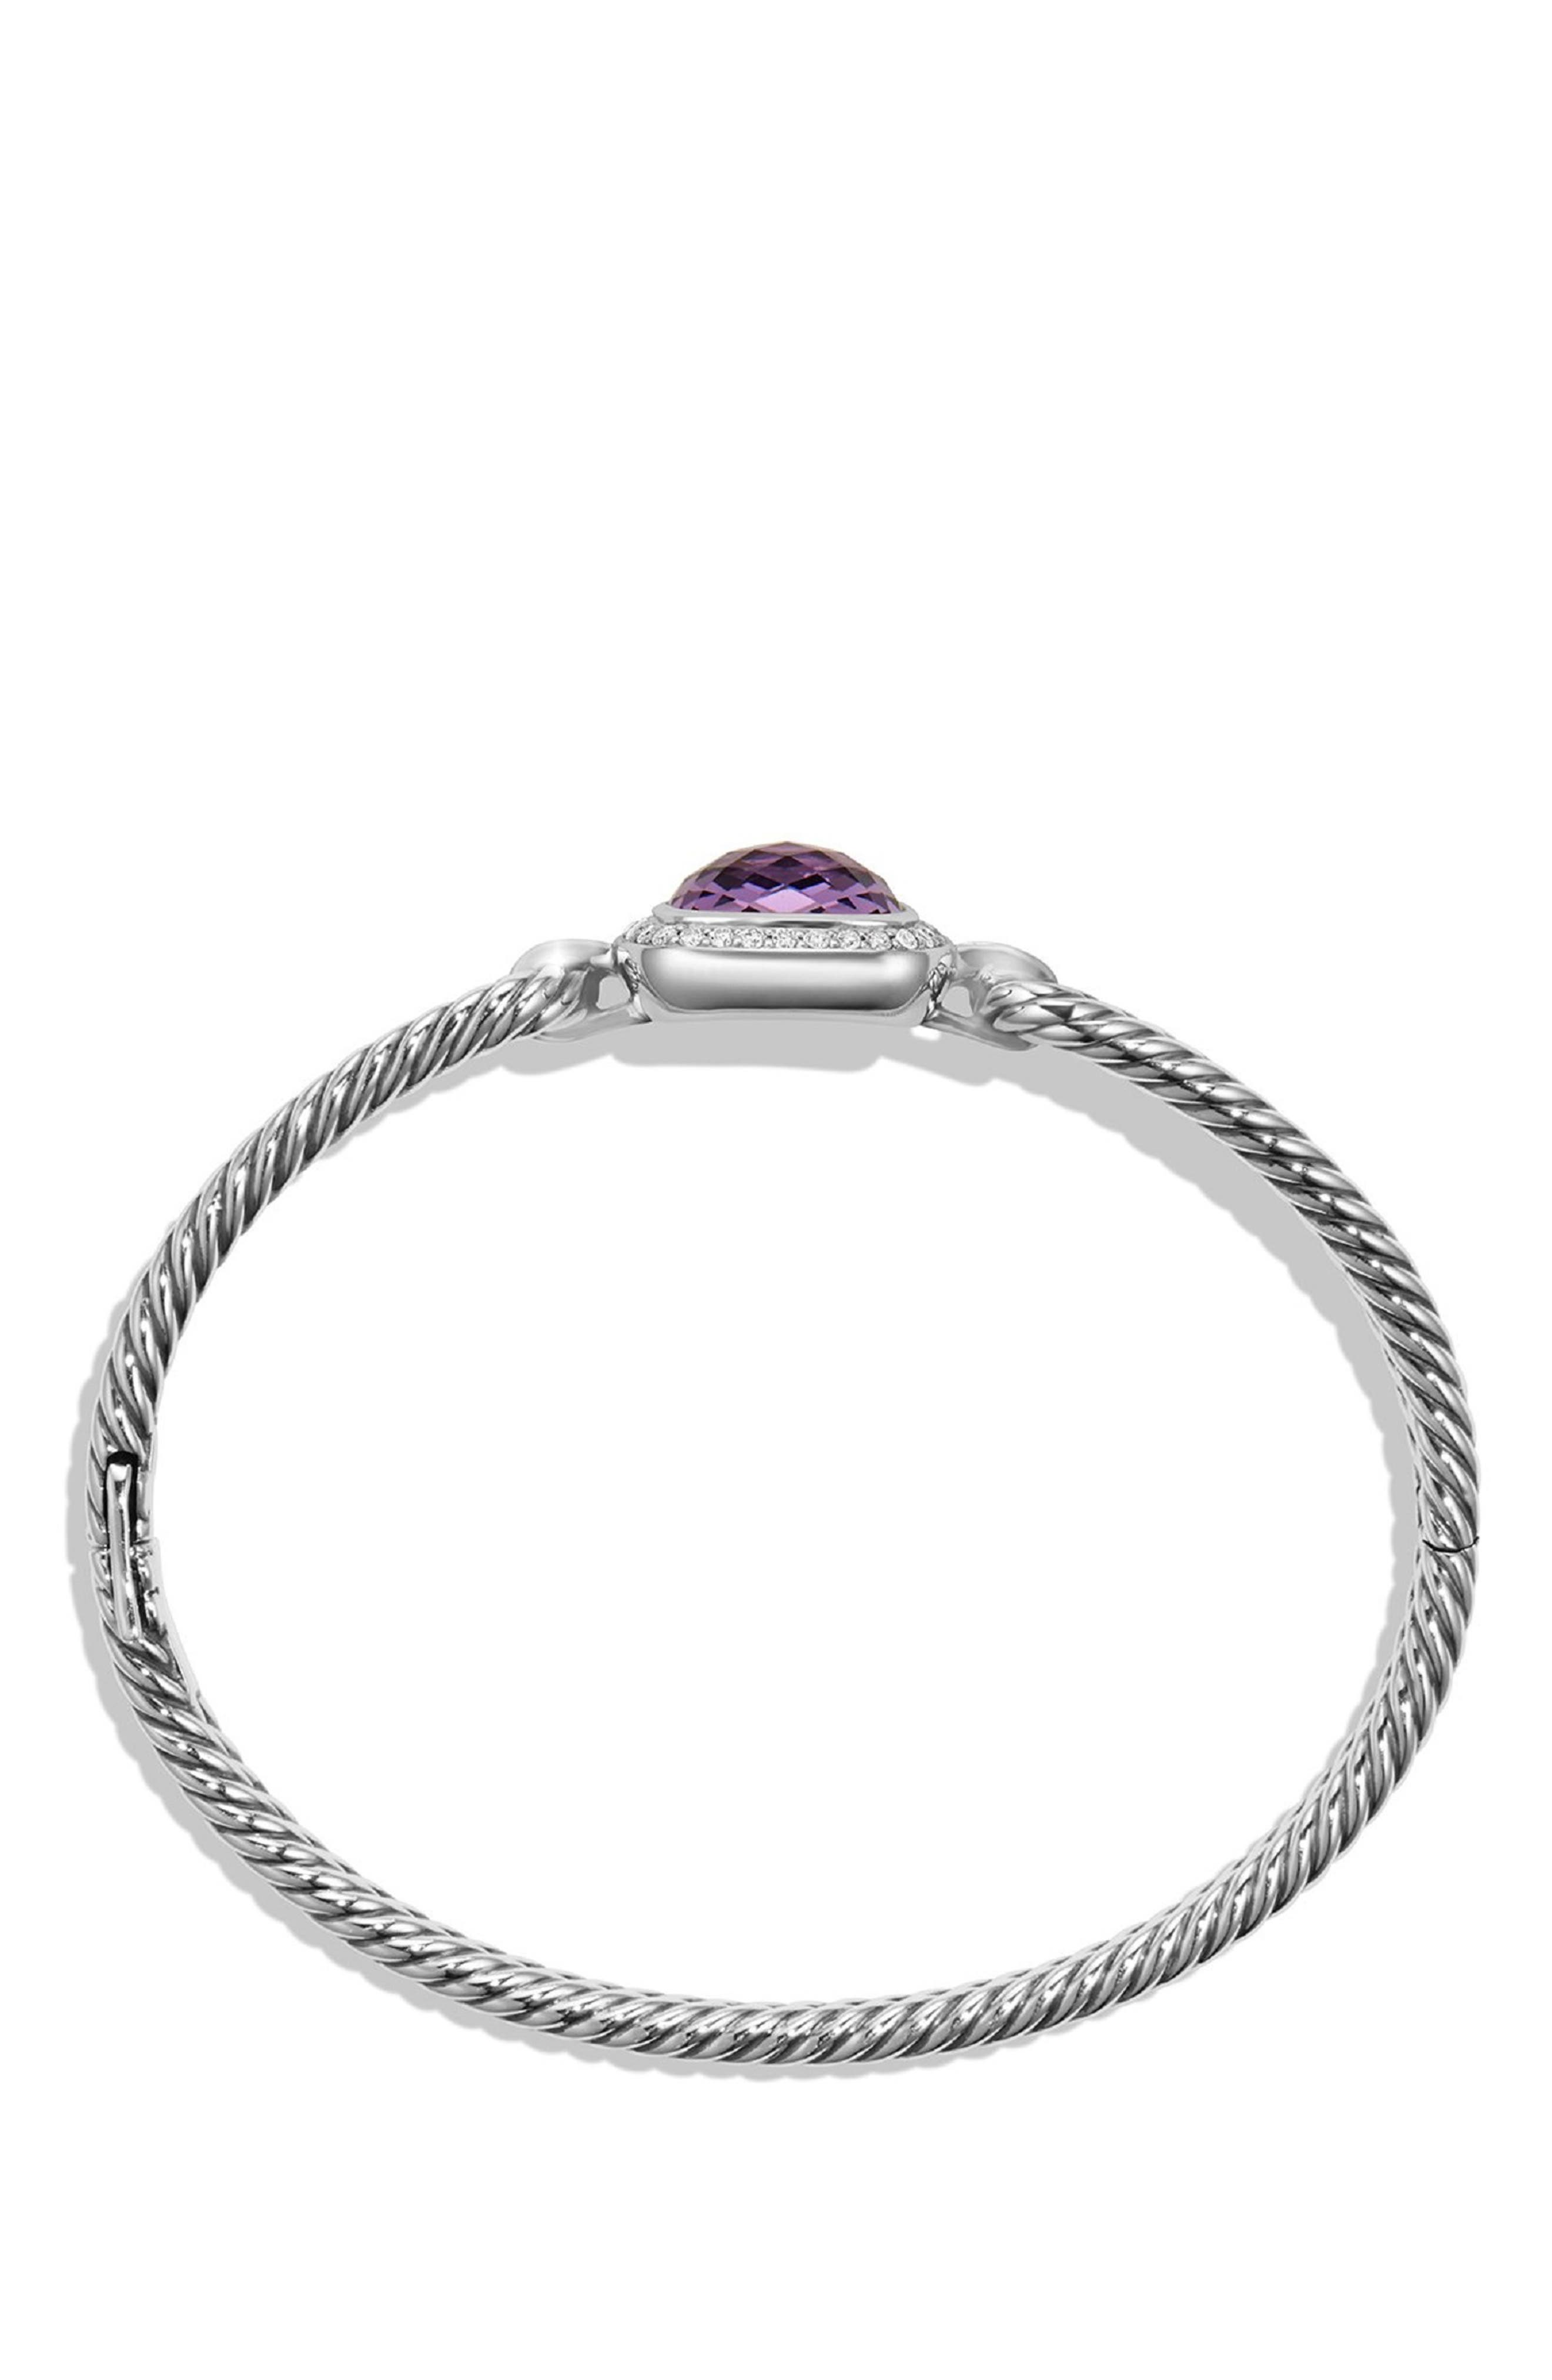 'Albion' Bracelet with Semiprecious Stone and Diamonds,                             Alternate thumbnail 2, color,                             AMETHYST